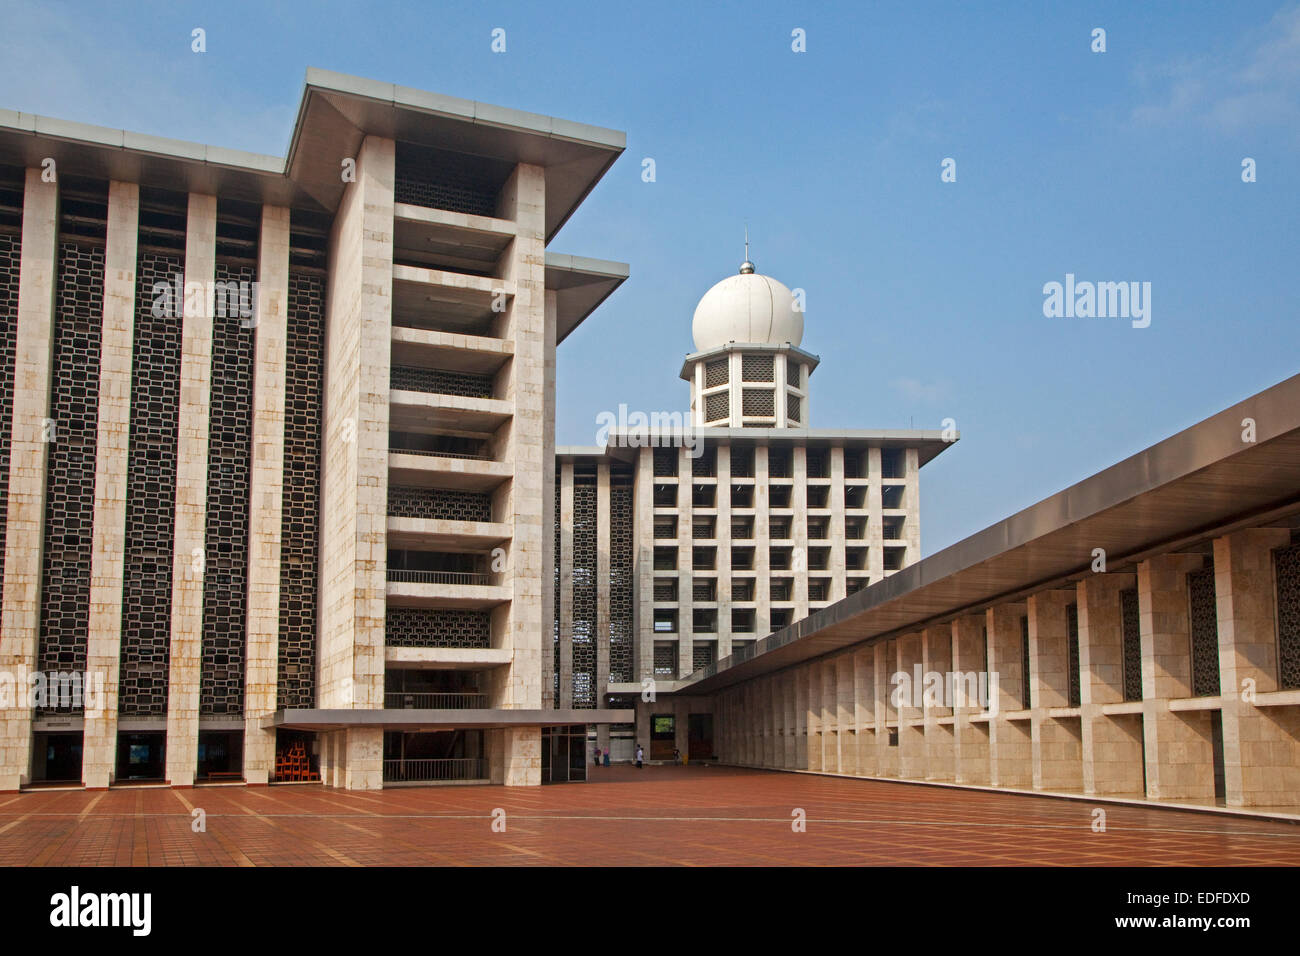 Istiqlal Mosque / Masjid Istiqlal, largest mosque in Indonesia and South East Asia at Jakarta - Stock Image